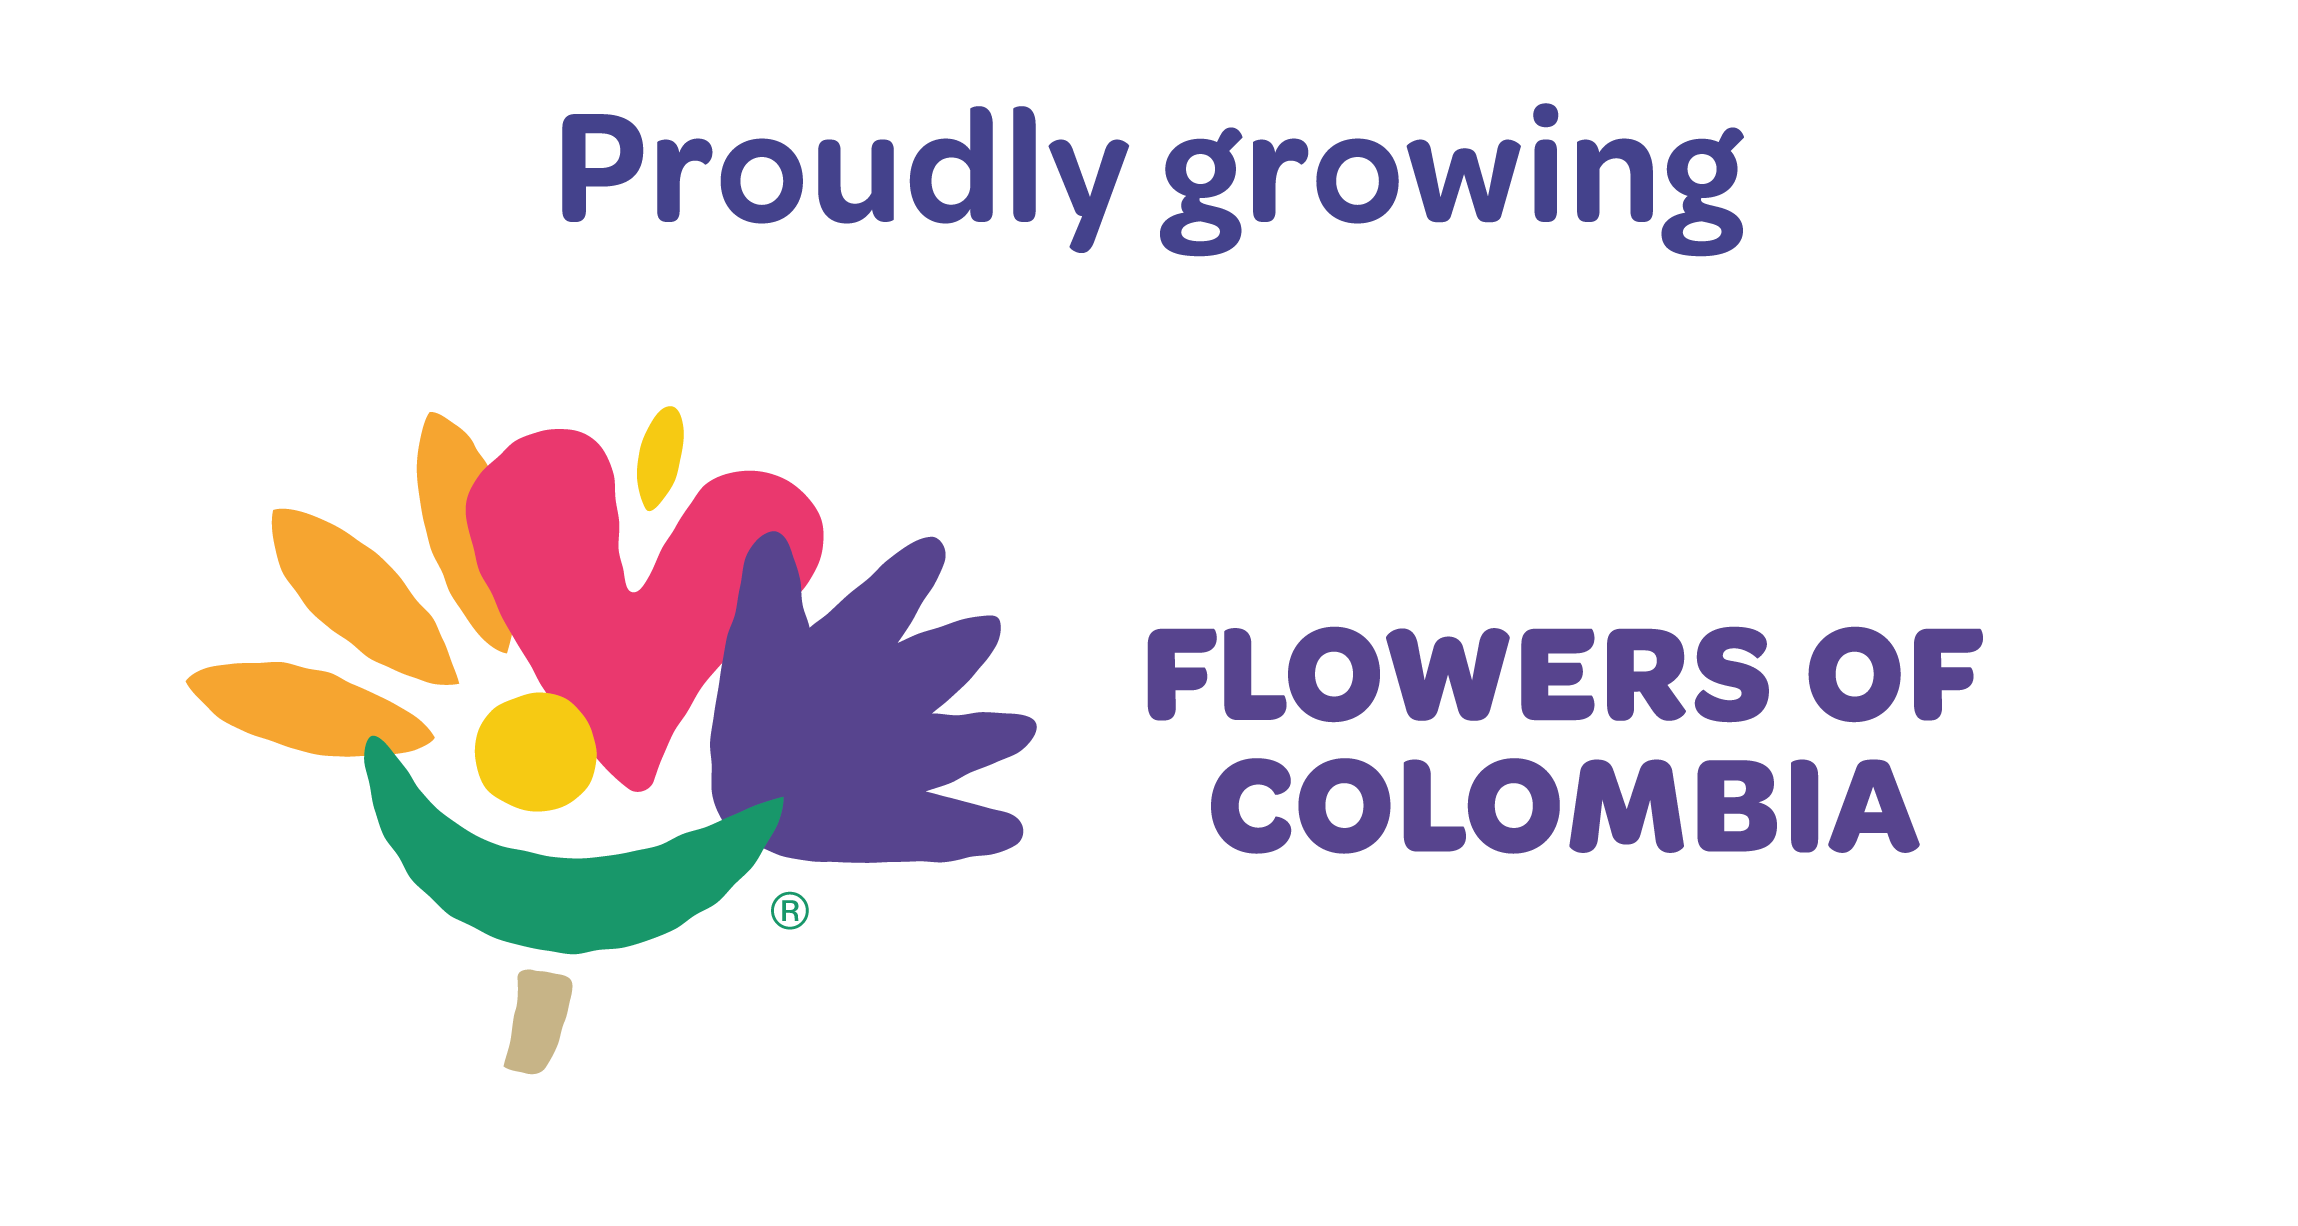 Flowers of Colombia